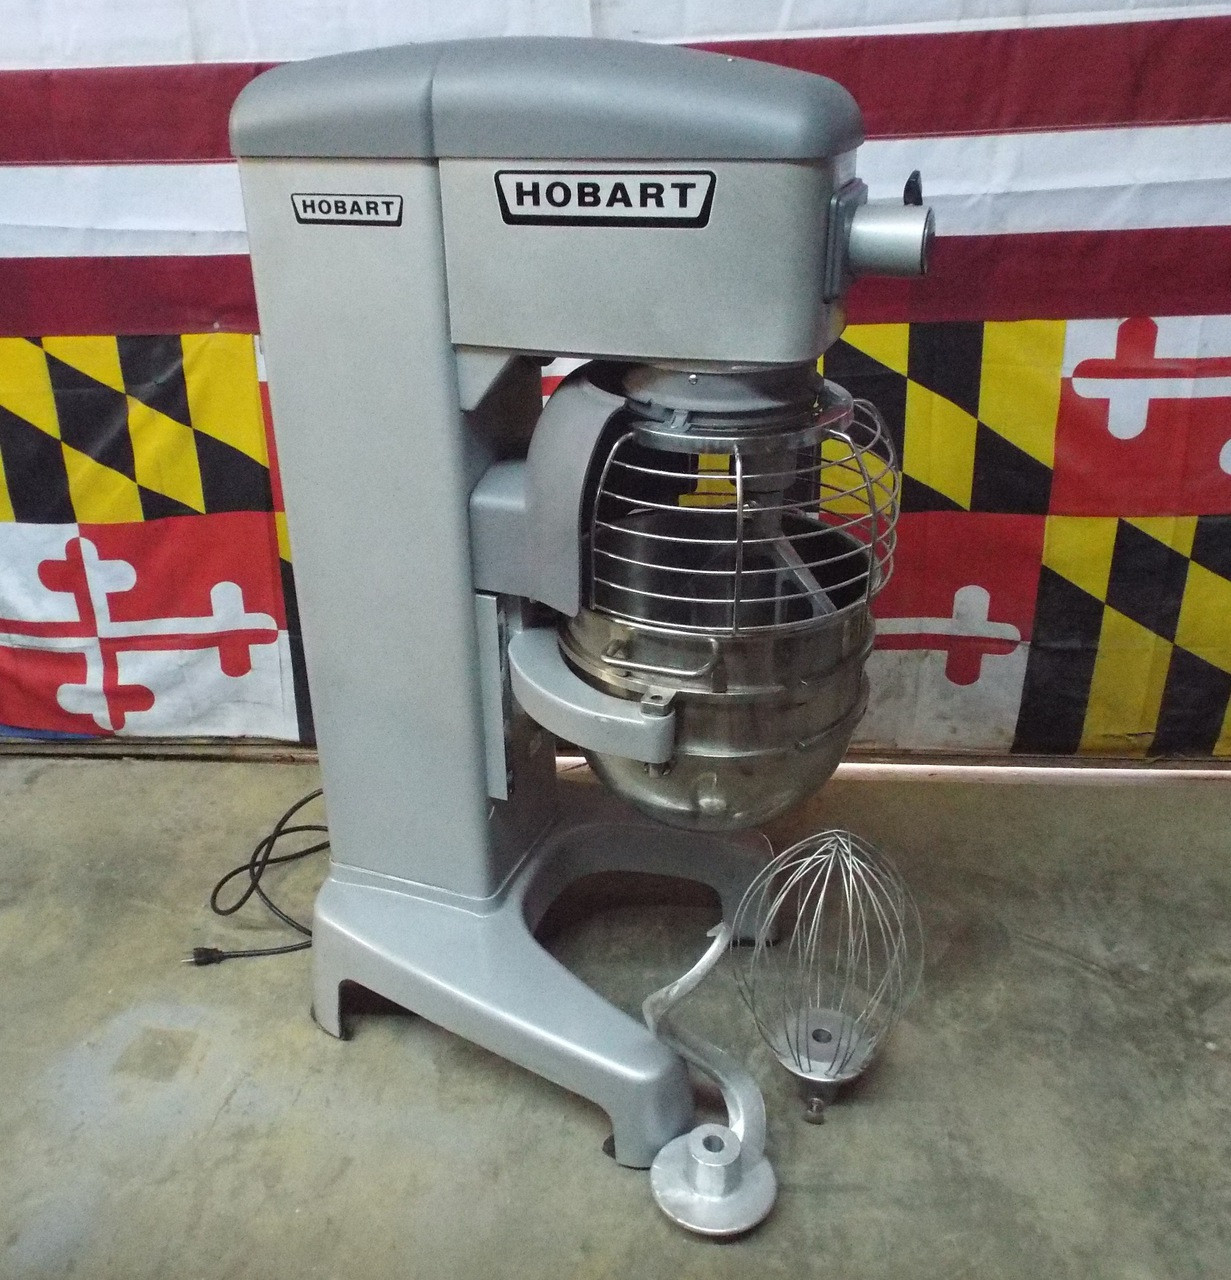 Hobart HL400 30 QT Dough Bakery Pizza  Mixer 208V 3 Phase